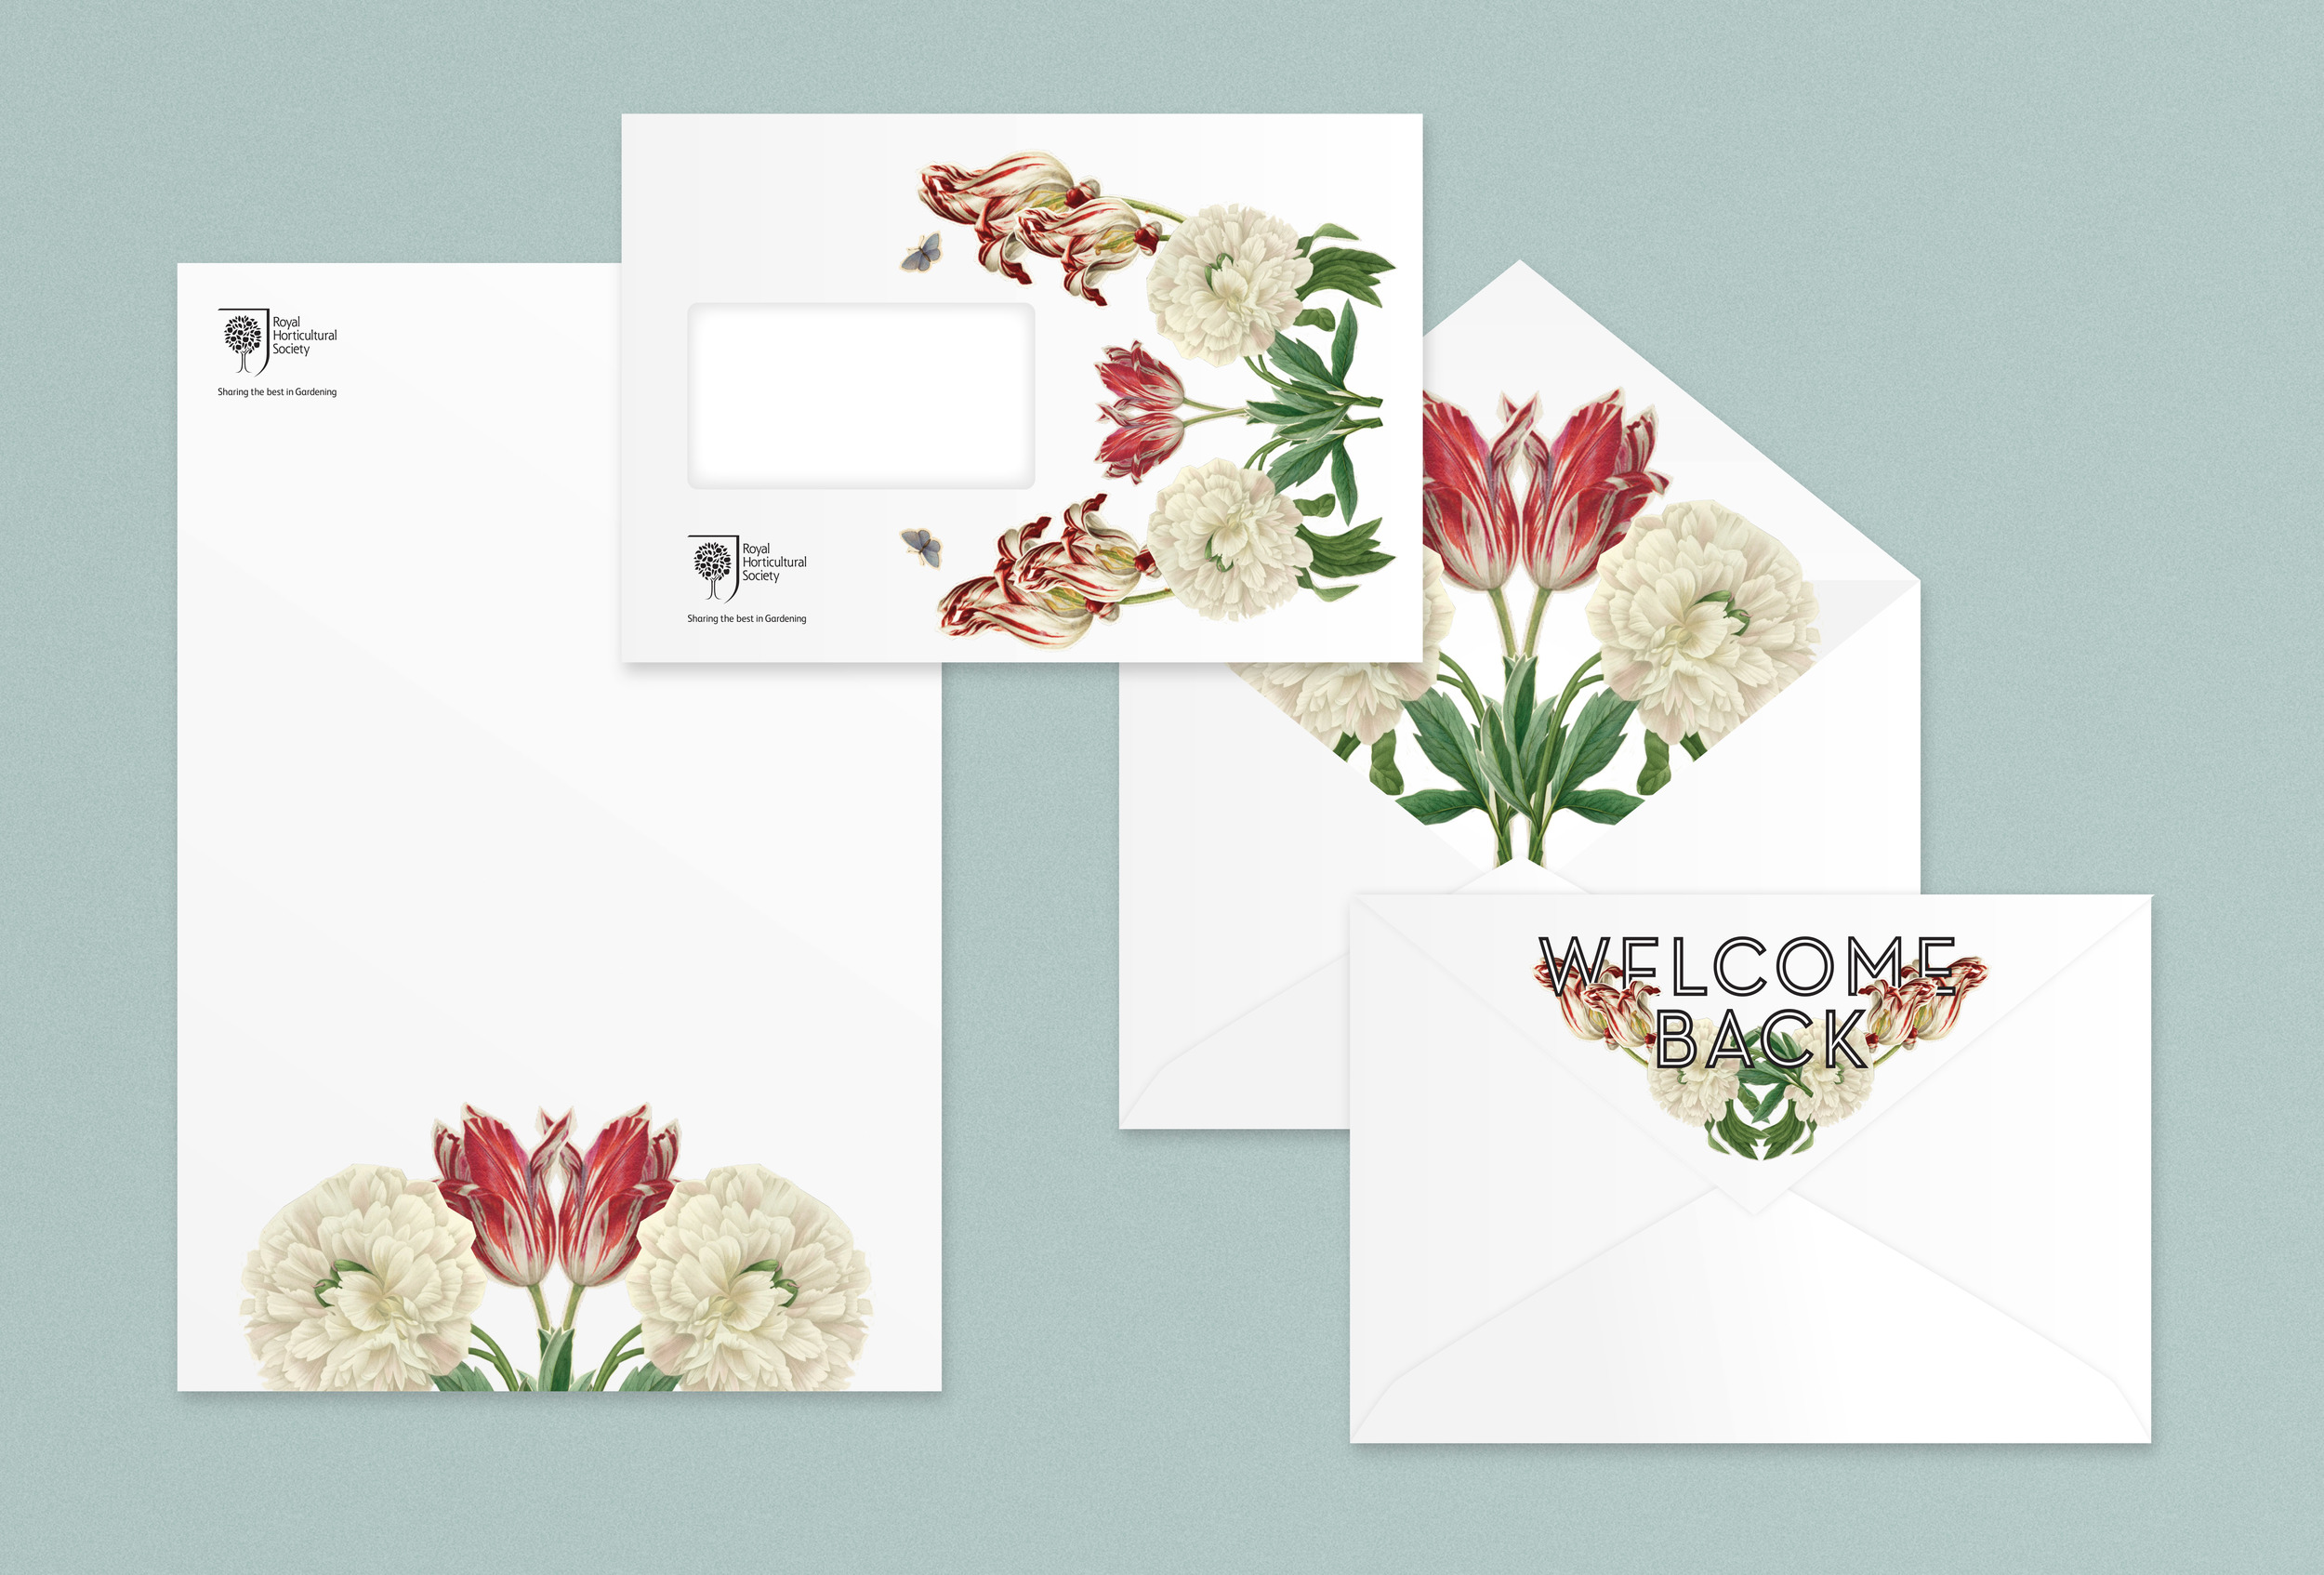 RHS_Stationery_Welcome back.jpg